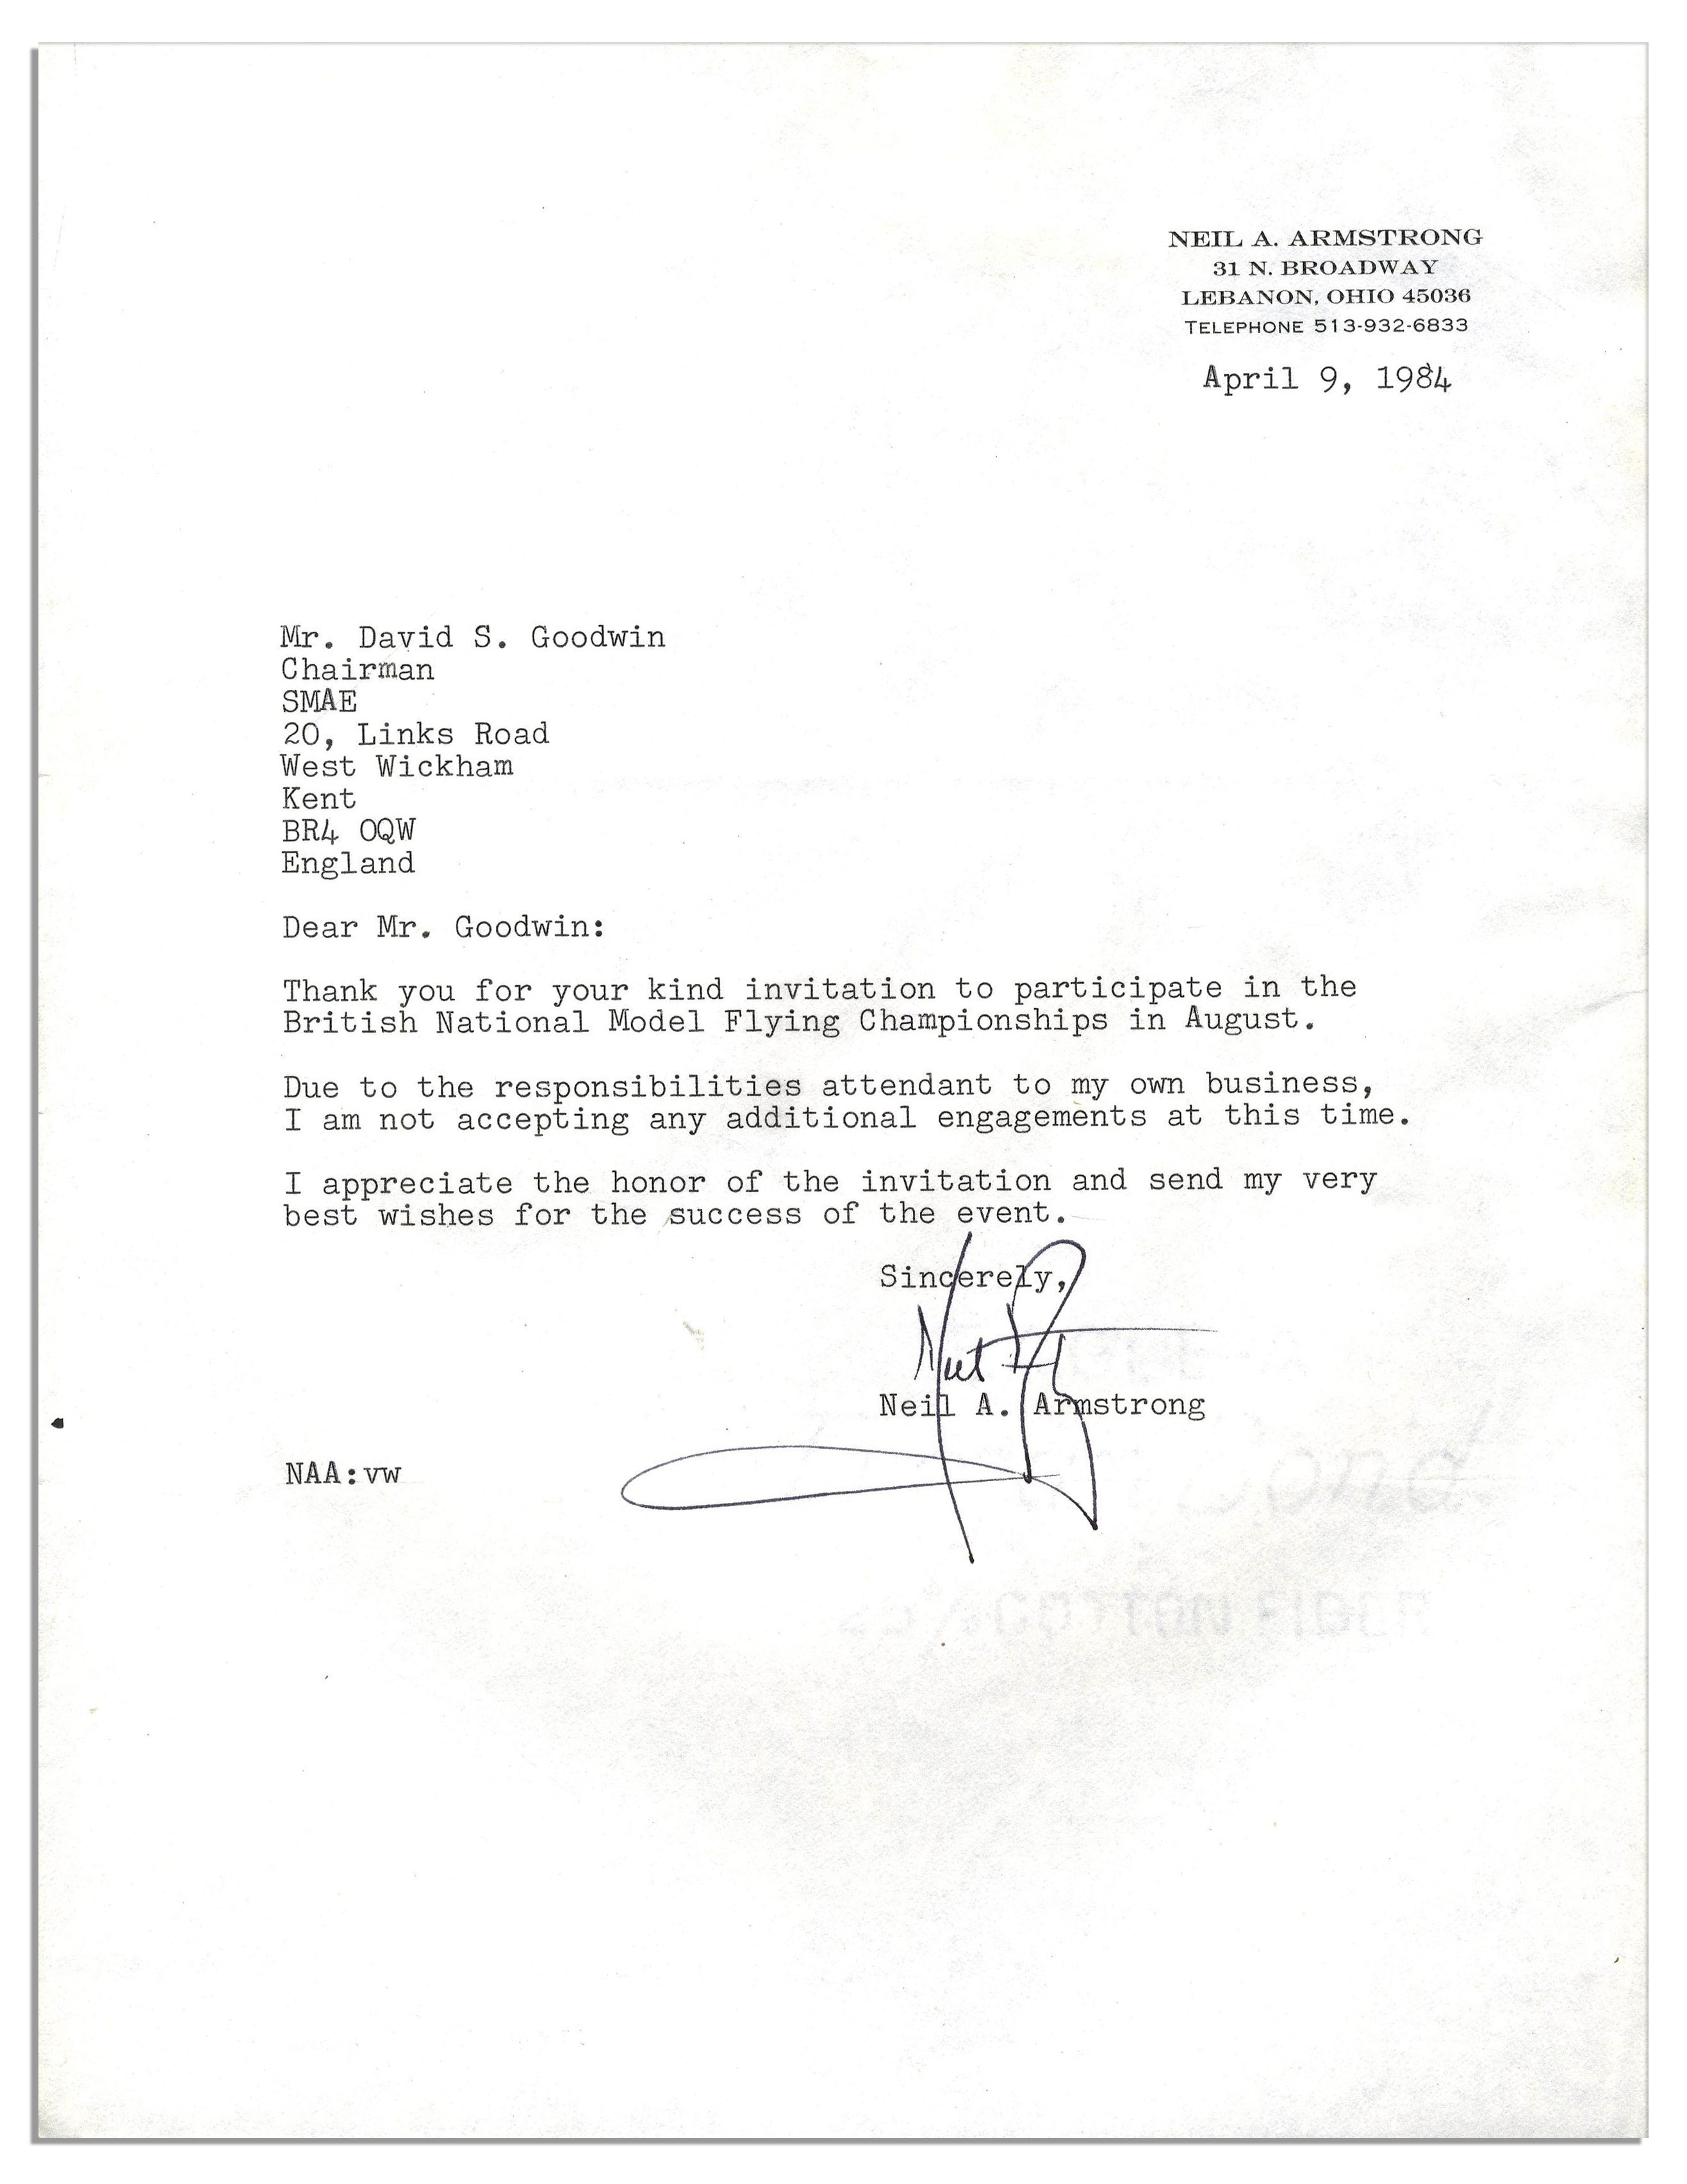 neil armstrong typed letter signed thank you for your